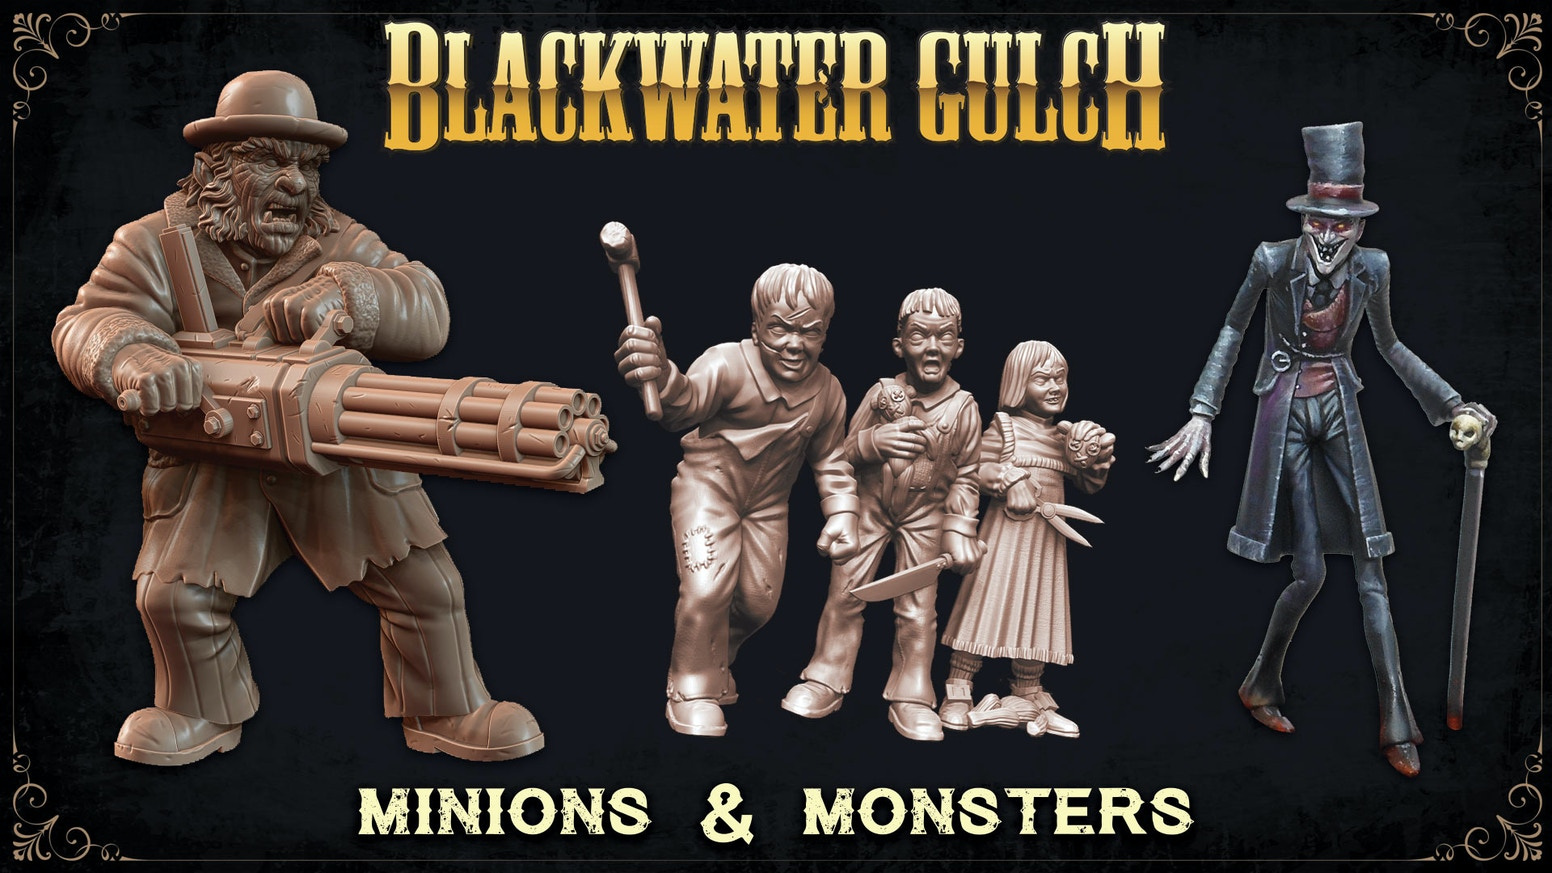 Blackwater Gulch is a Western Horror Skirmish Game, set in a late 1800's alternate world where things certainly do go bump in the night